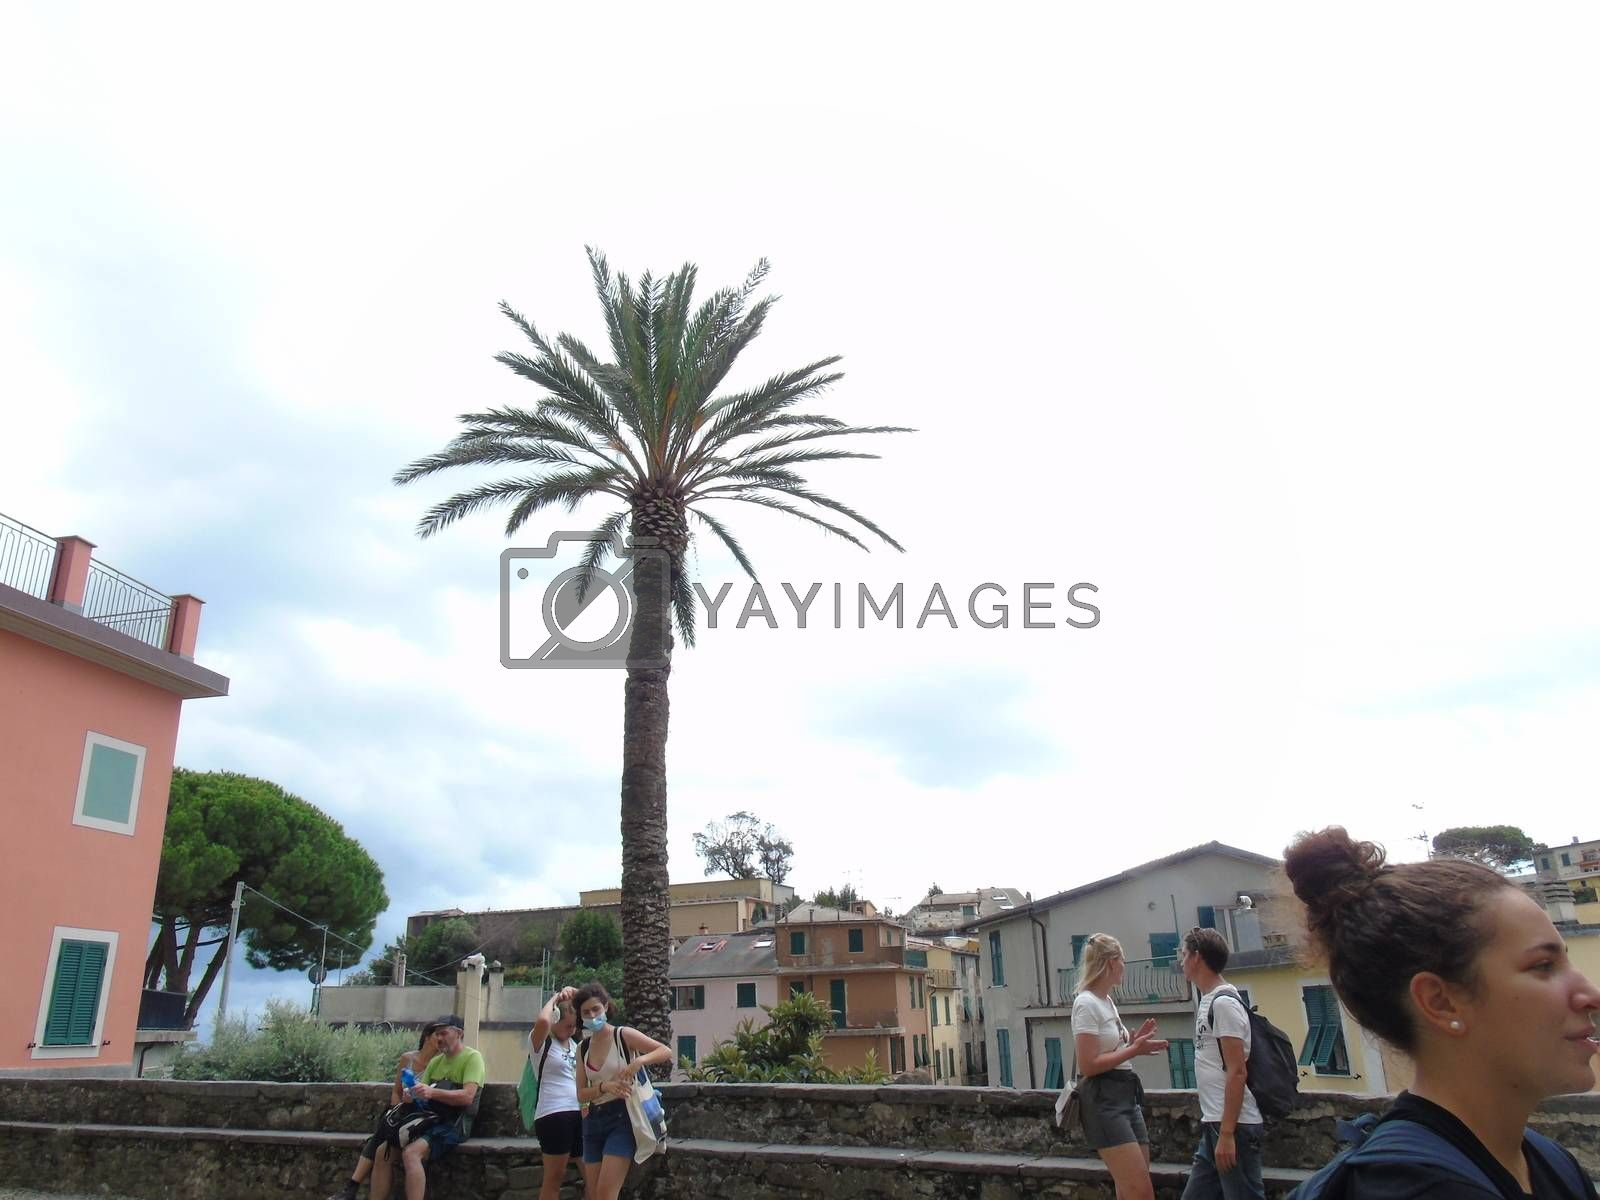 Royalty free image of Cinque Terre, Italy by yohananegusse